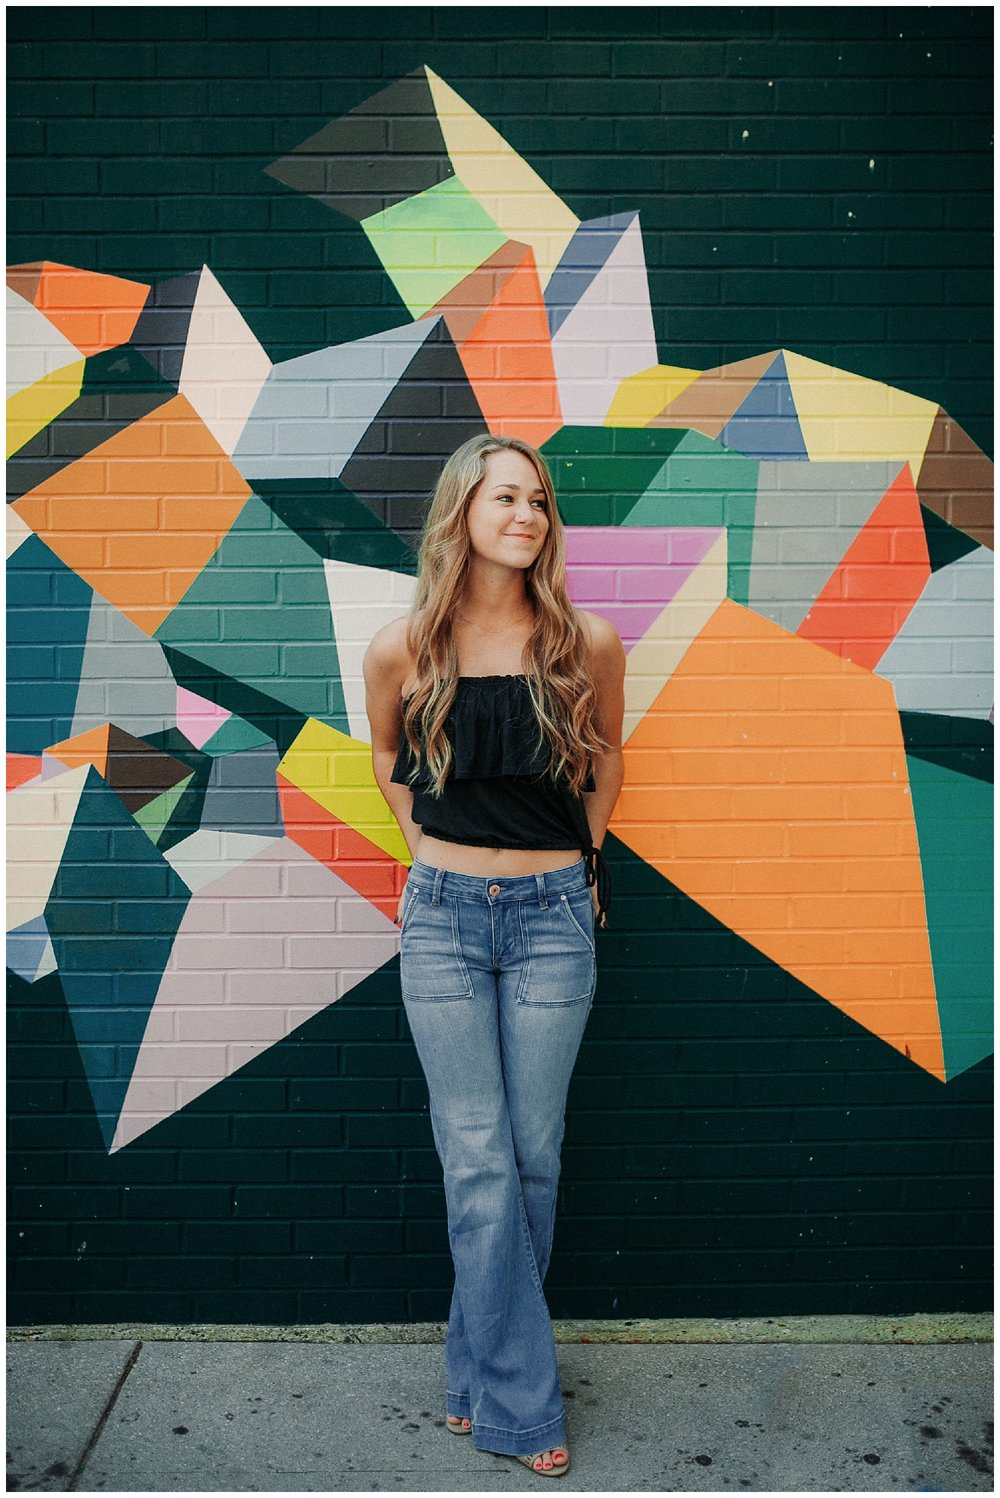 lindybeth photography - senior pictures - maddie-32.jpg